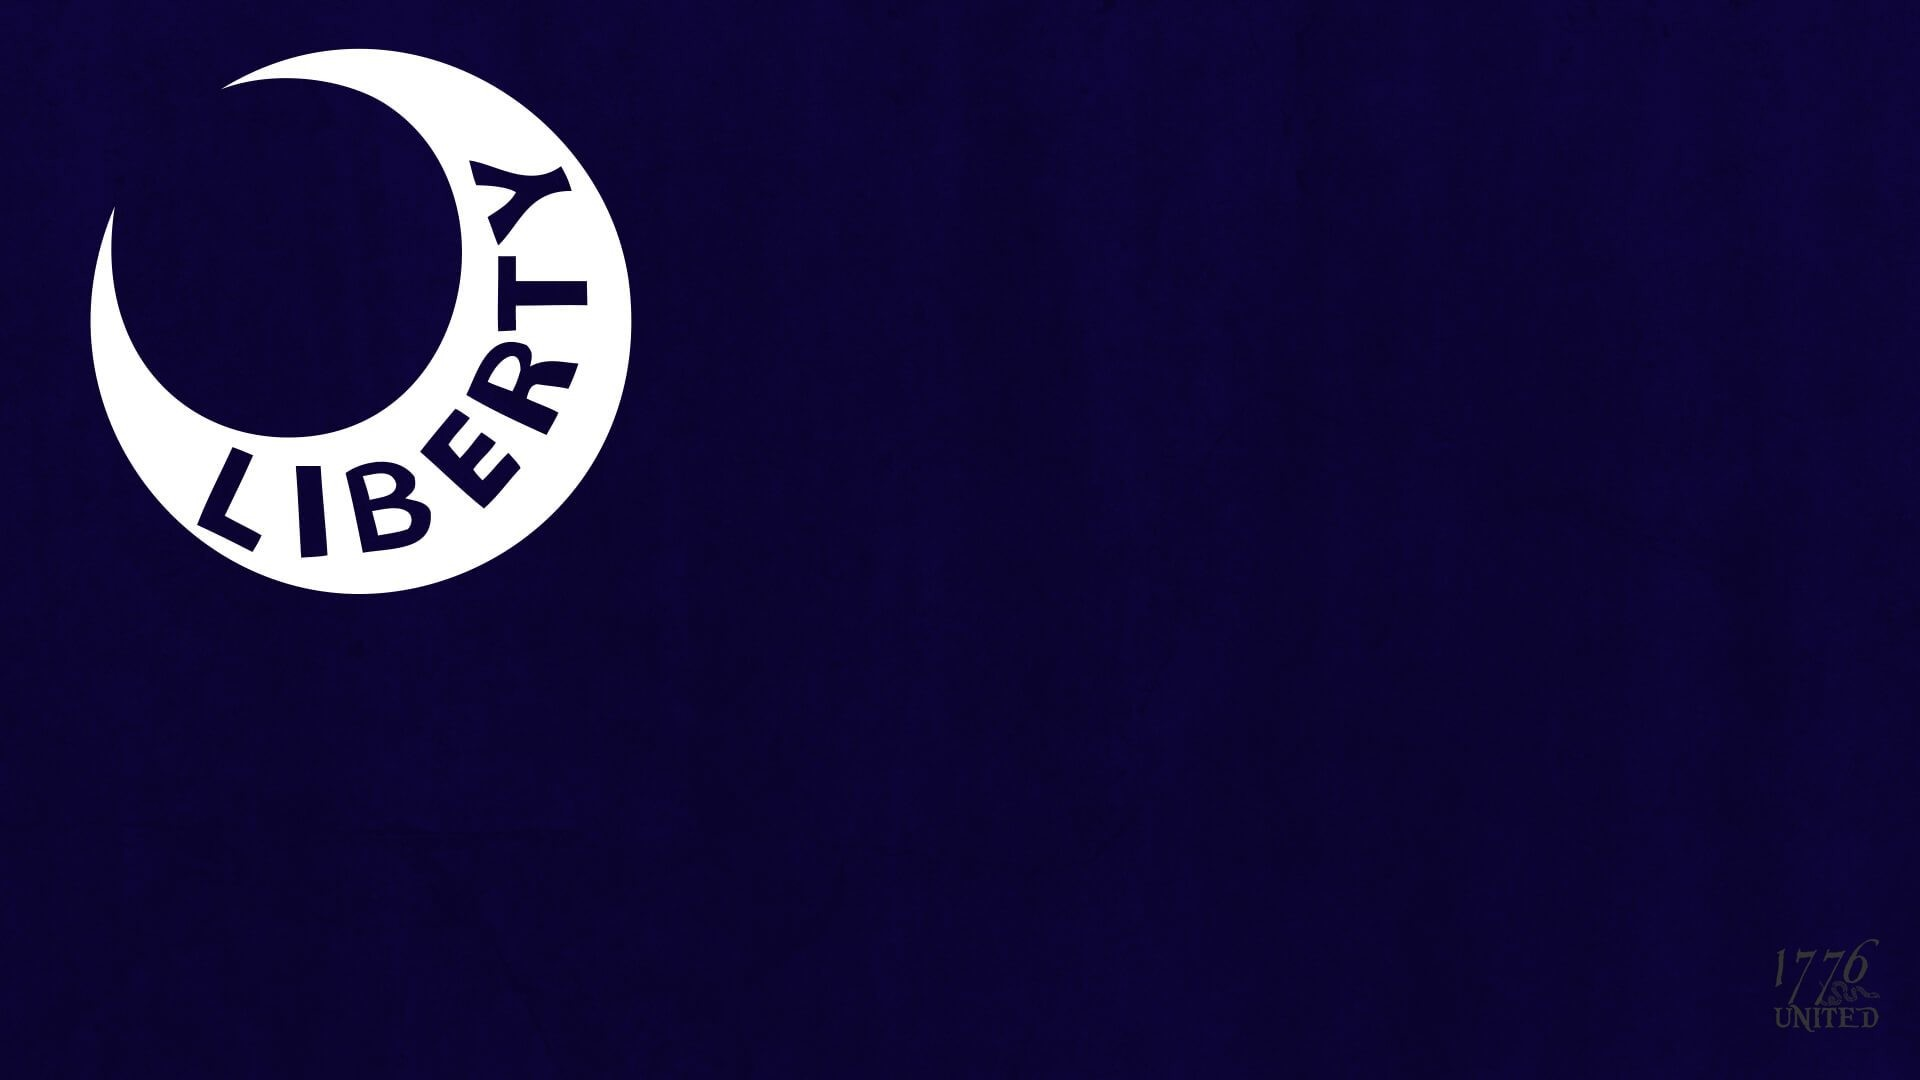 1920x1080 ... 1776 United Moultrie Flag Patriotic Desktop Wallpaper ...